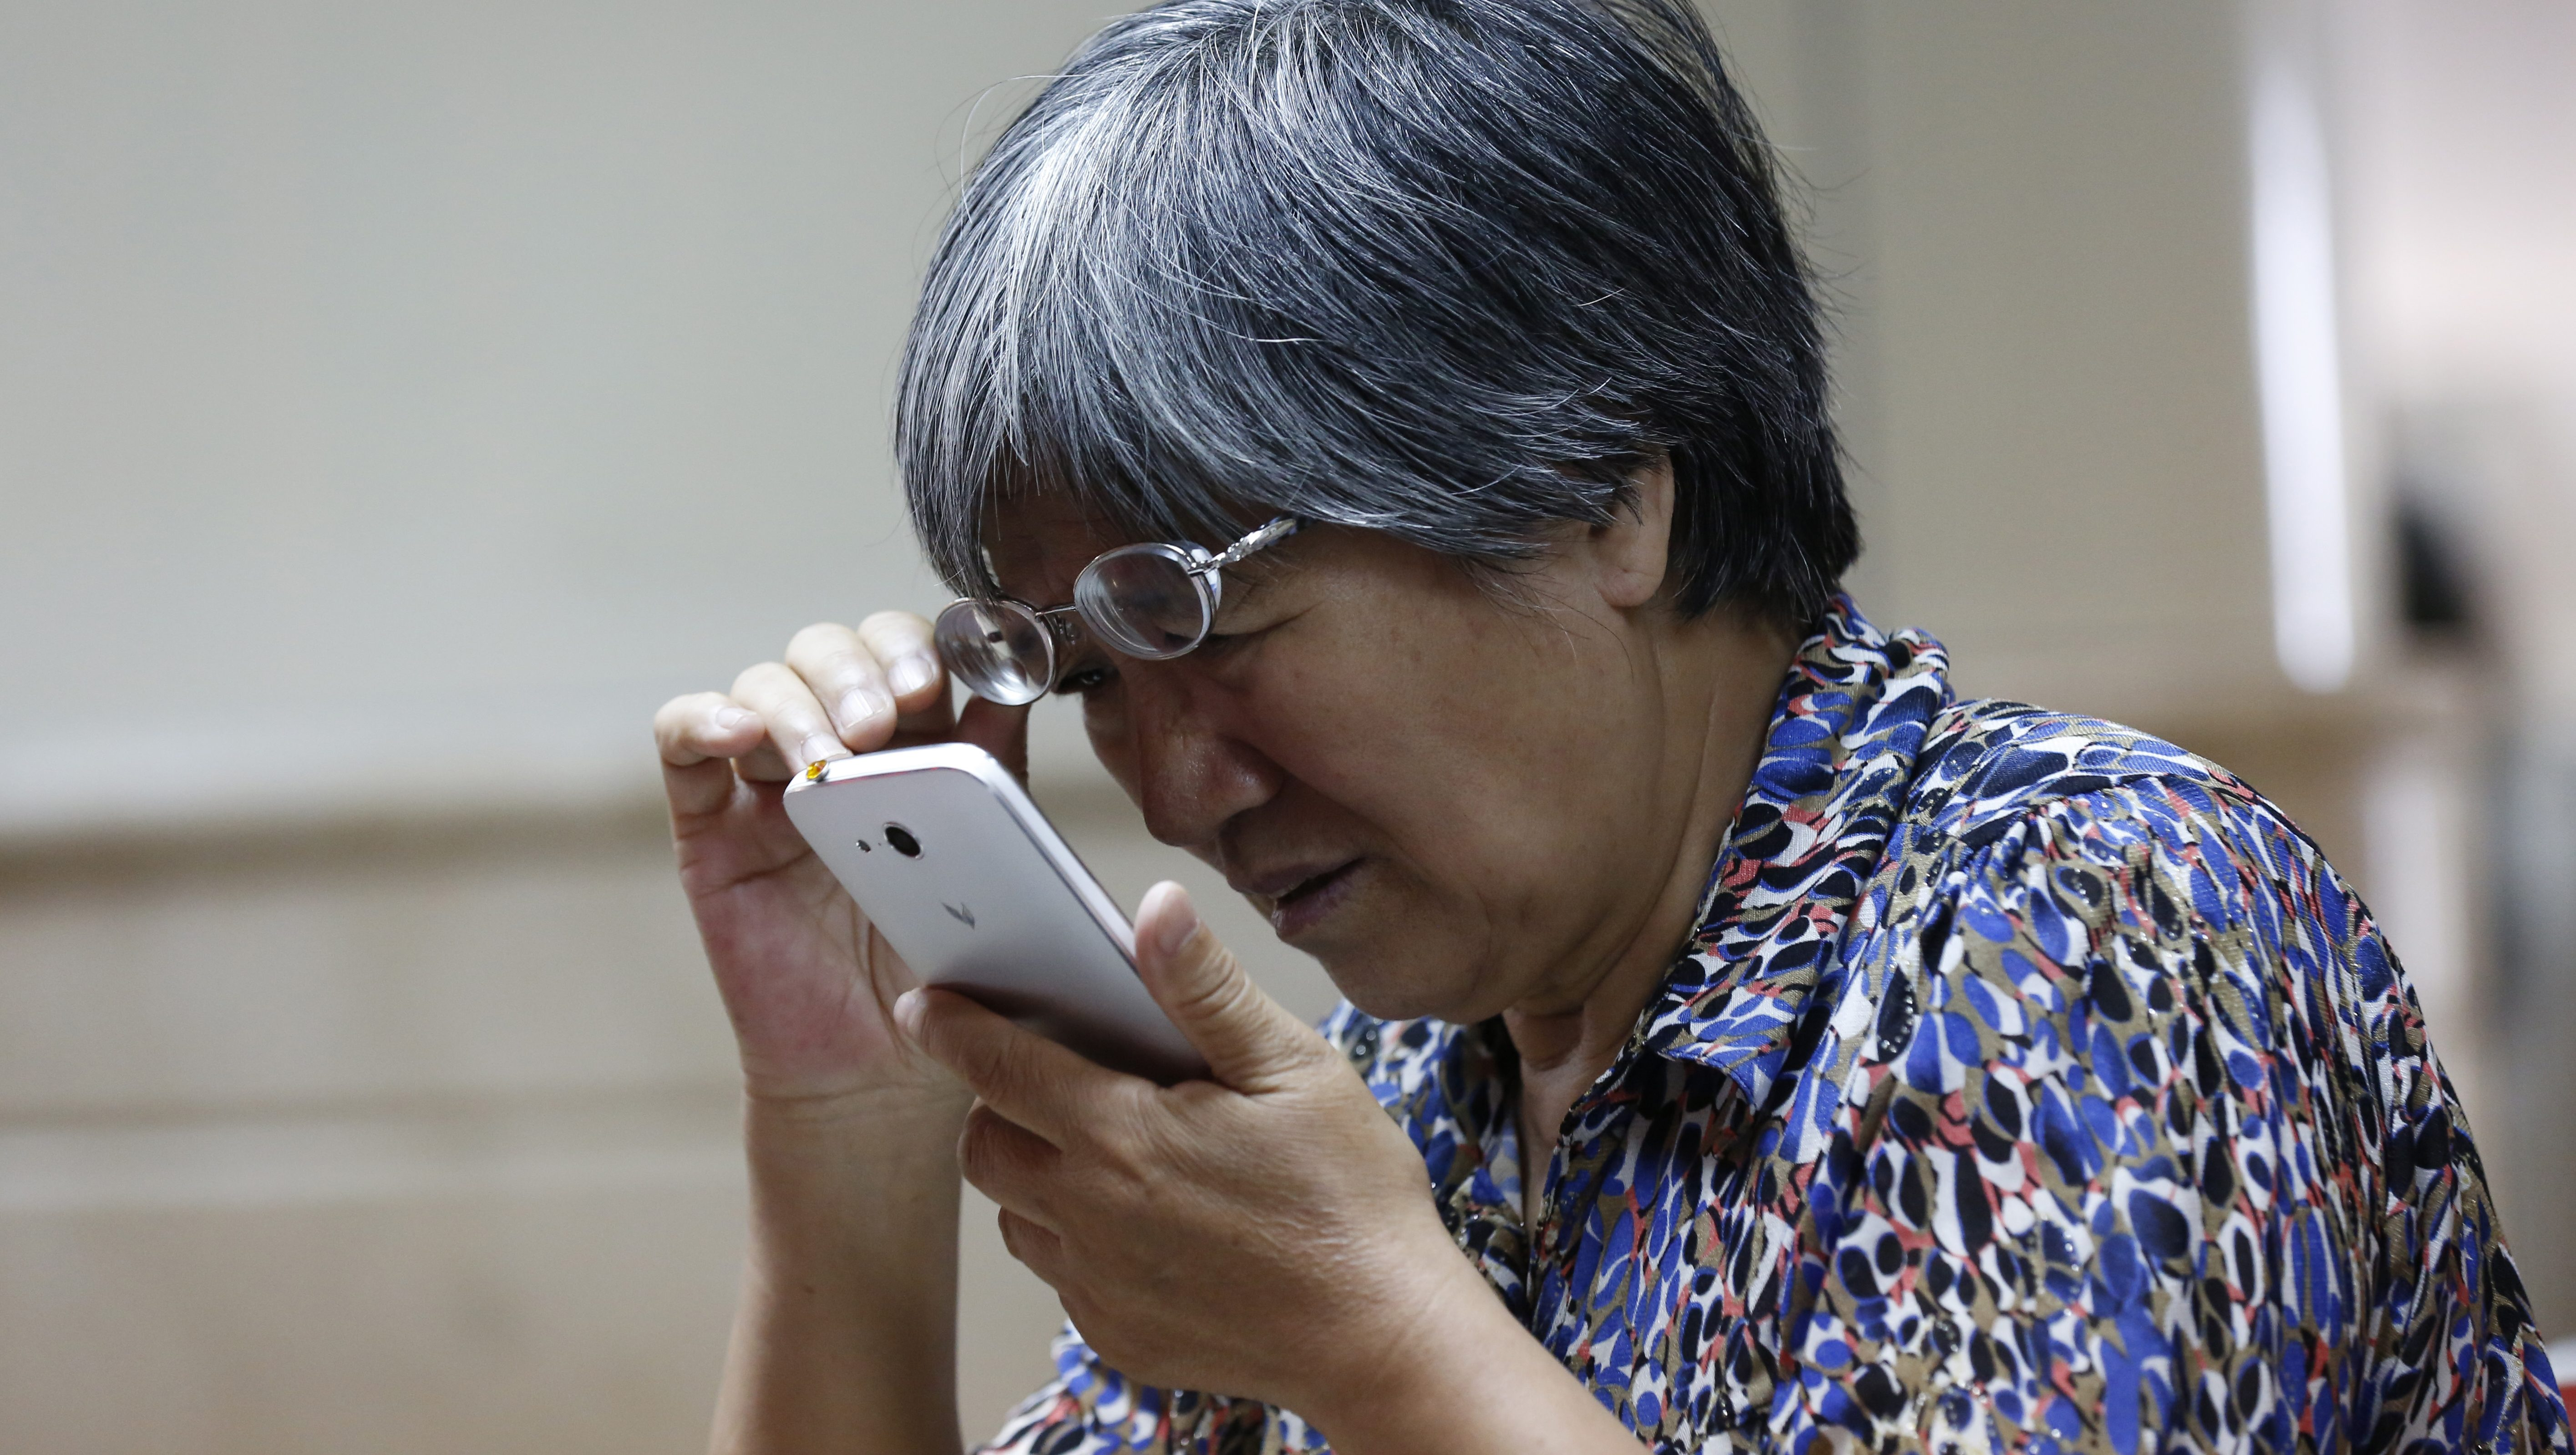 A stock investor checks the stock prices by a mobile phone at a brokerage house in Beijing city, China, 25 May 2015. China's shares climb to highest level in seven years that the benchmark Shanghai Composite Index rising 3.35 percent, or 156.2 points, to finish at 4,813.8 points and the Shenzhen Component Index gained 1.9 percent, or 305.26 points, to close at 16,351.06 points.